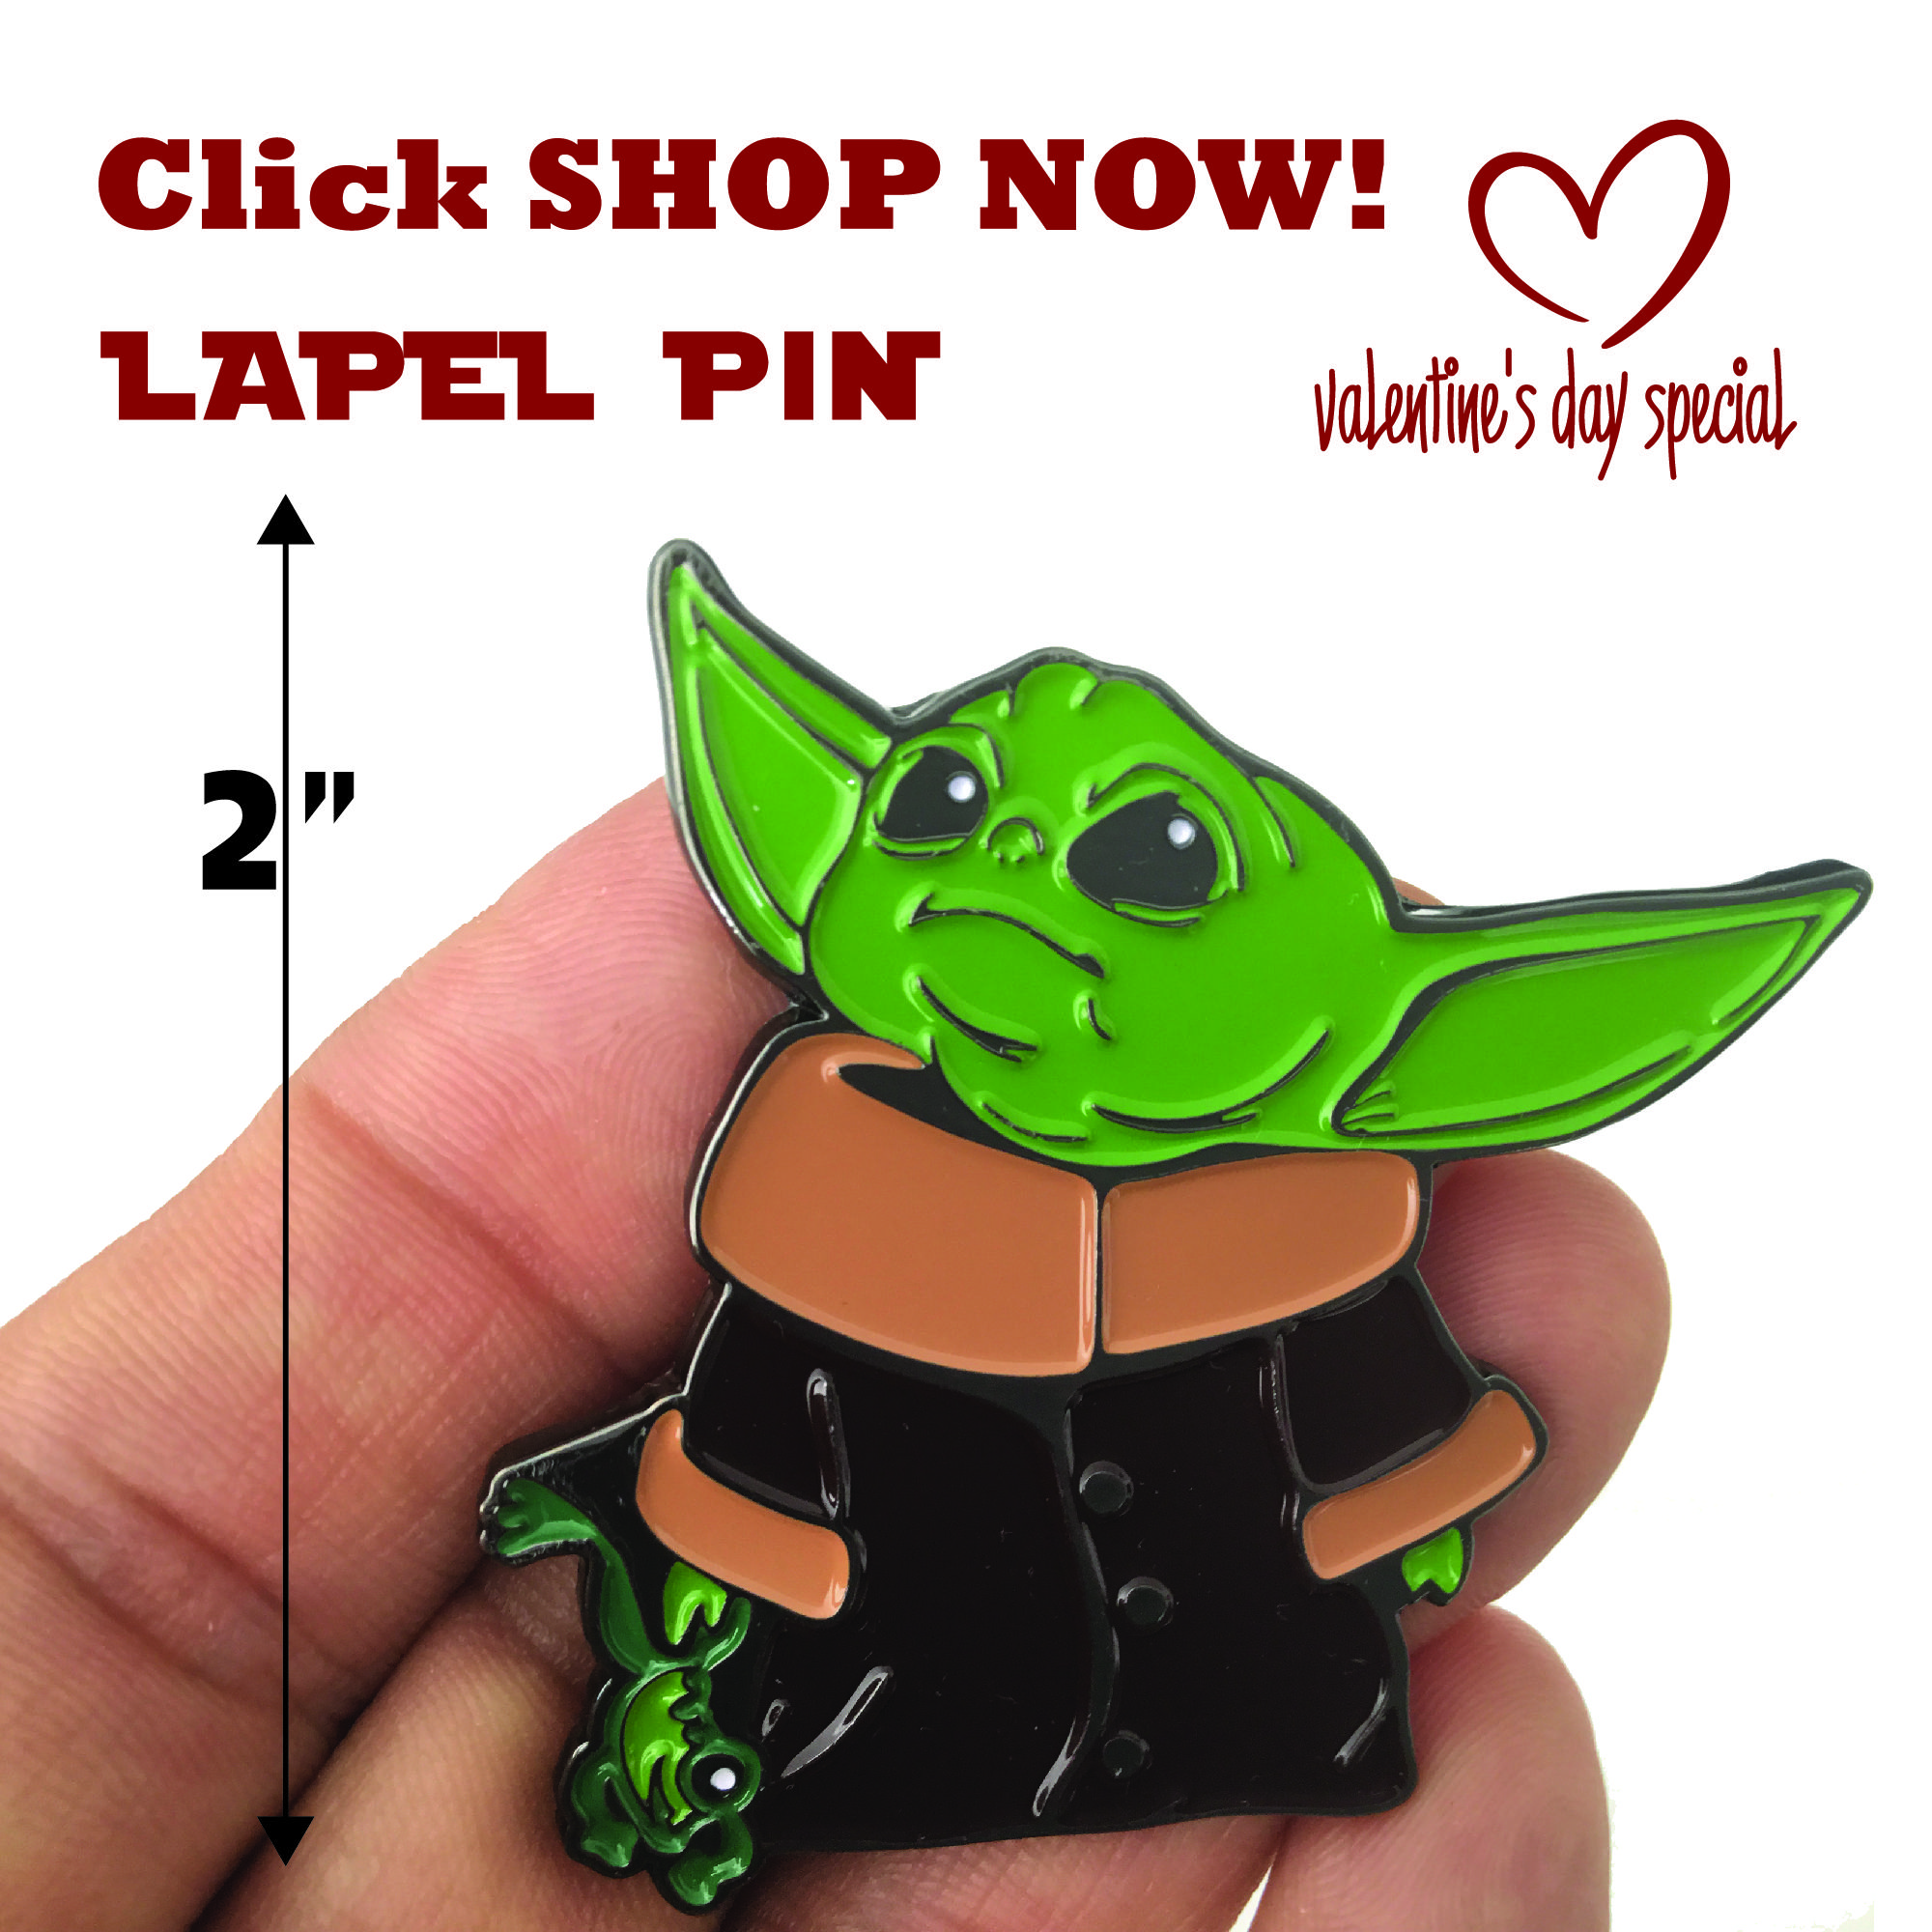 Multicolor Keychain Baby Yoda 2 inch with Frog The Child Character from The Star Wars Disney Television Series The Mandalorian with Double Butterfly Clutch